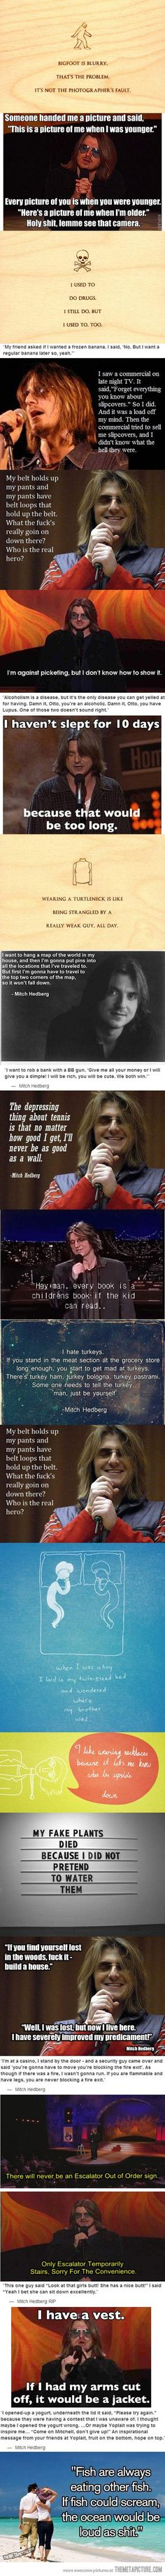 Mitch Hedberg...hilarious!